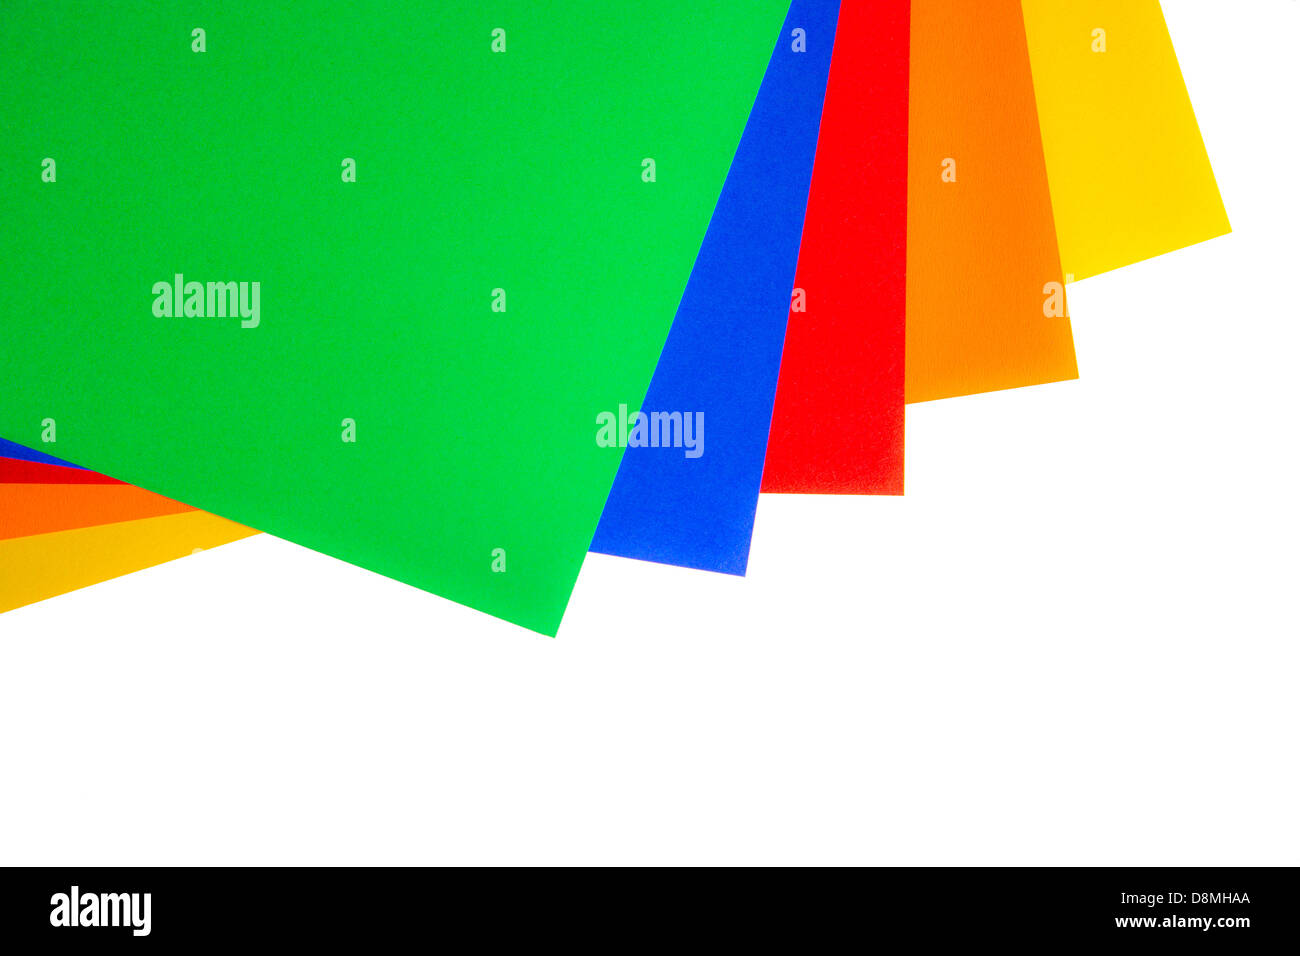 Sheets of paper with different colors green, blue, red, orange and yellow - Stock Image